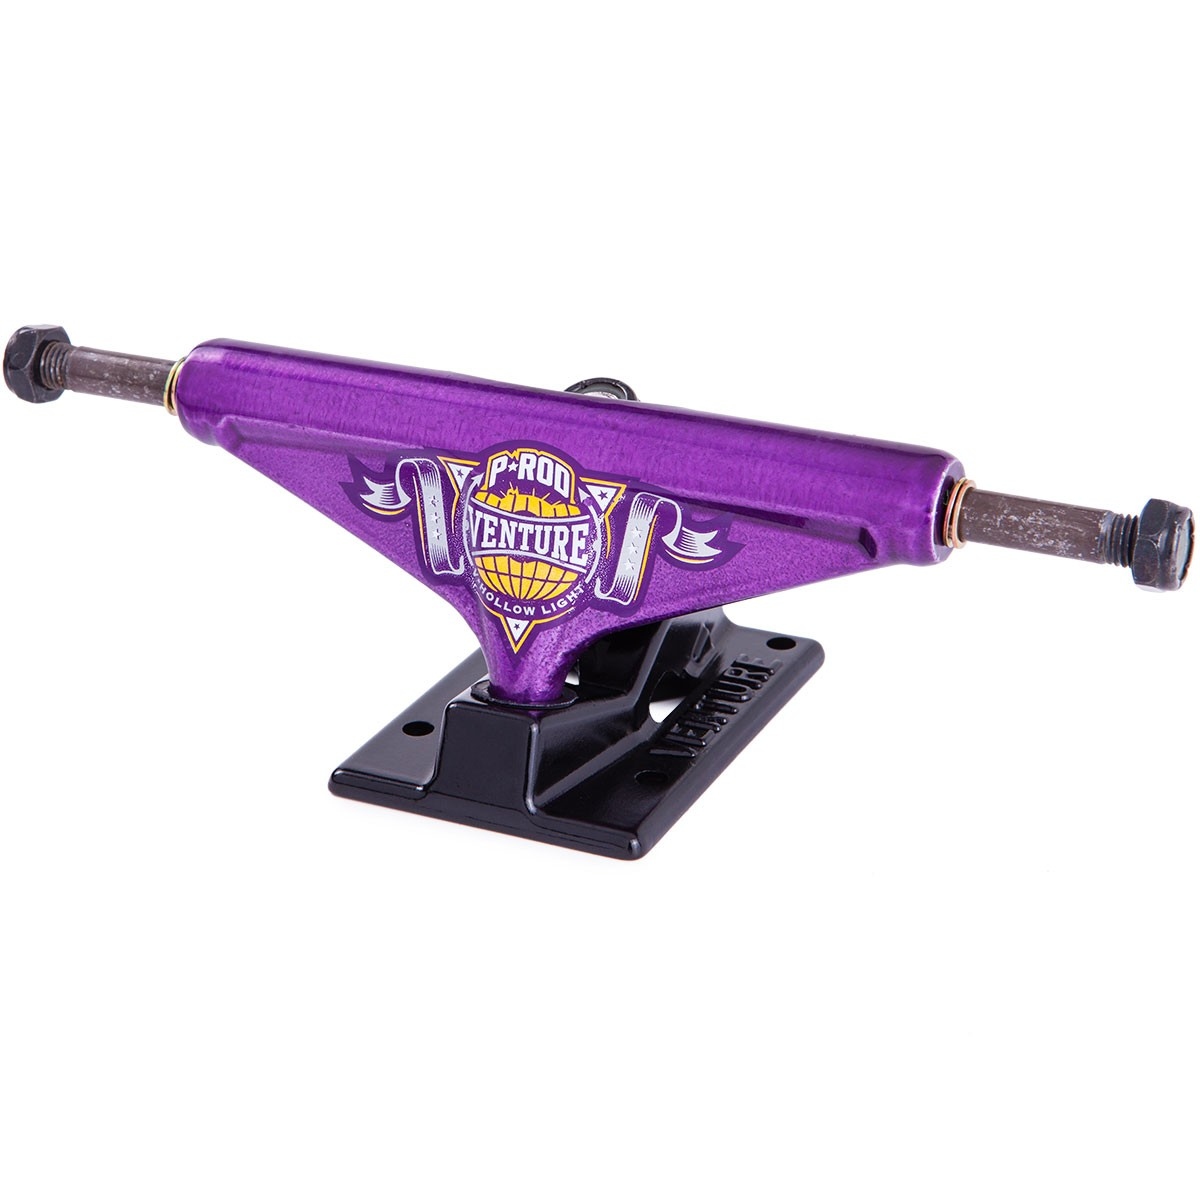 Venture P-Rod Champ 2 Hollow Skateboard Trucks